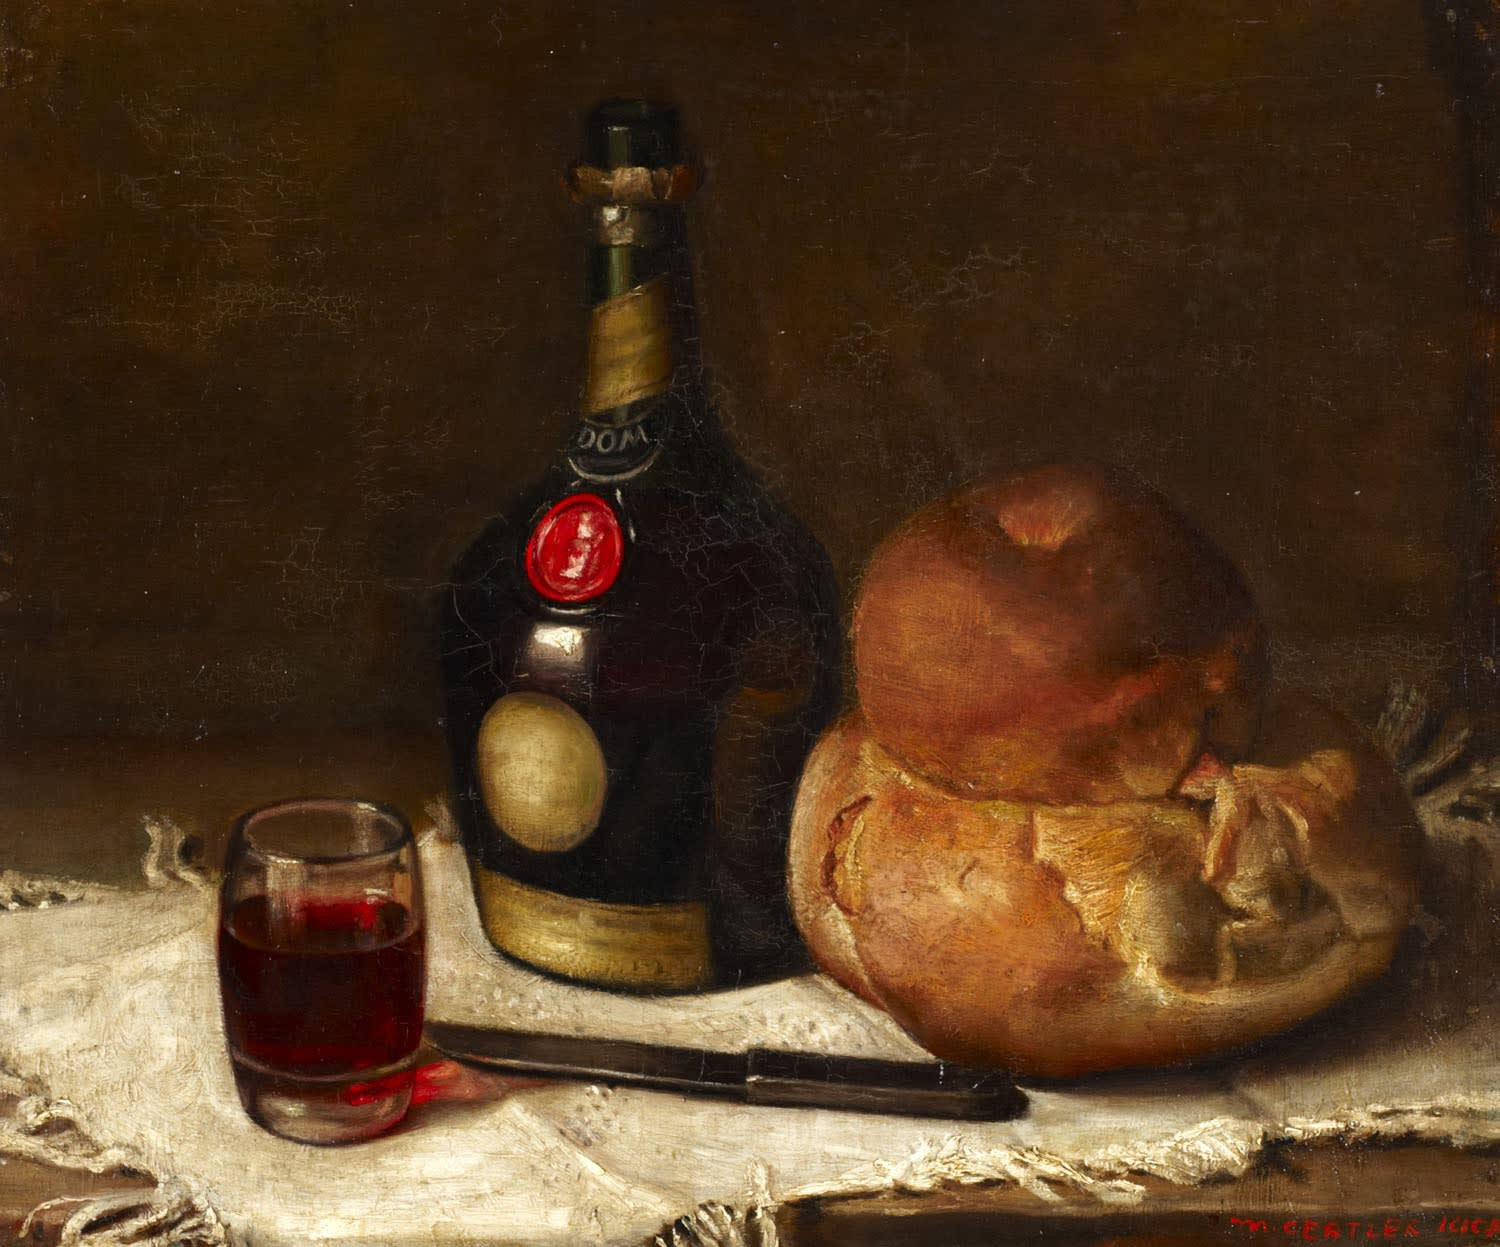 Still Life with a Bottle of Benedictine by Mark Gertler (1891-1939), 1908. Oil on Canvas.